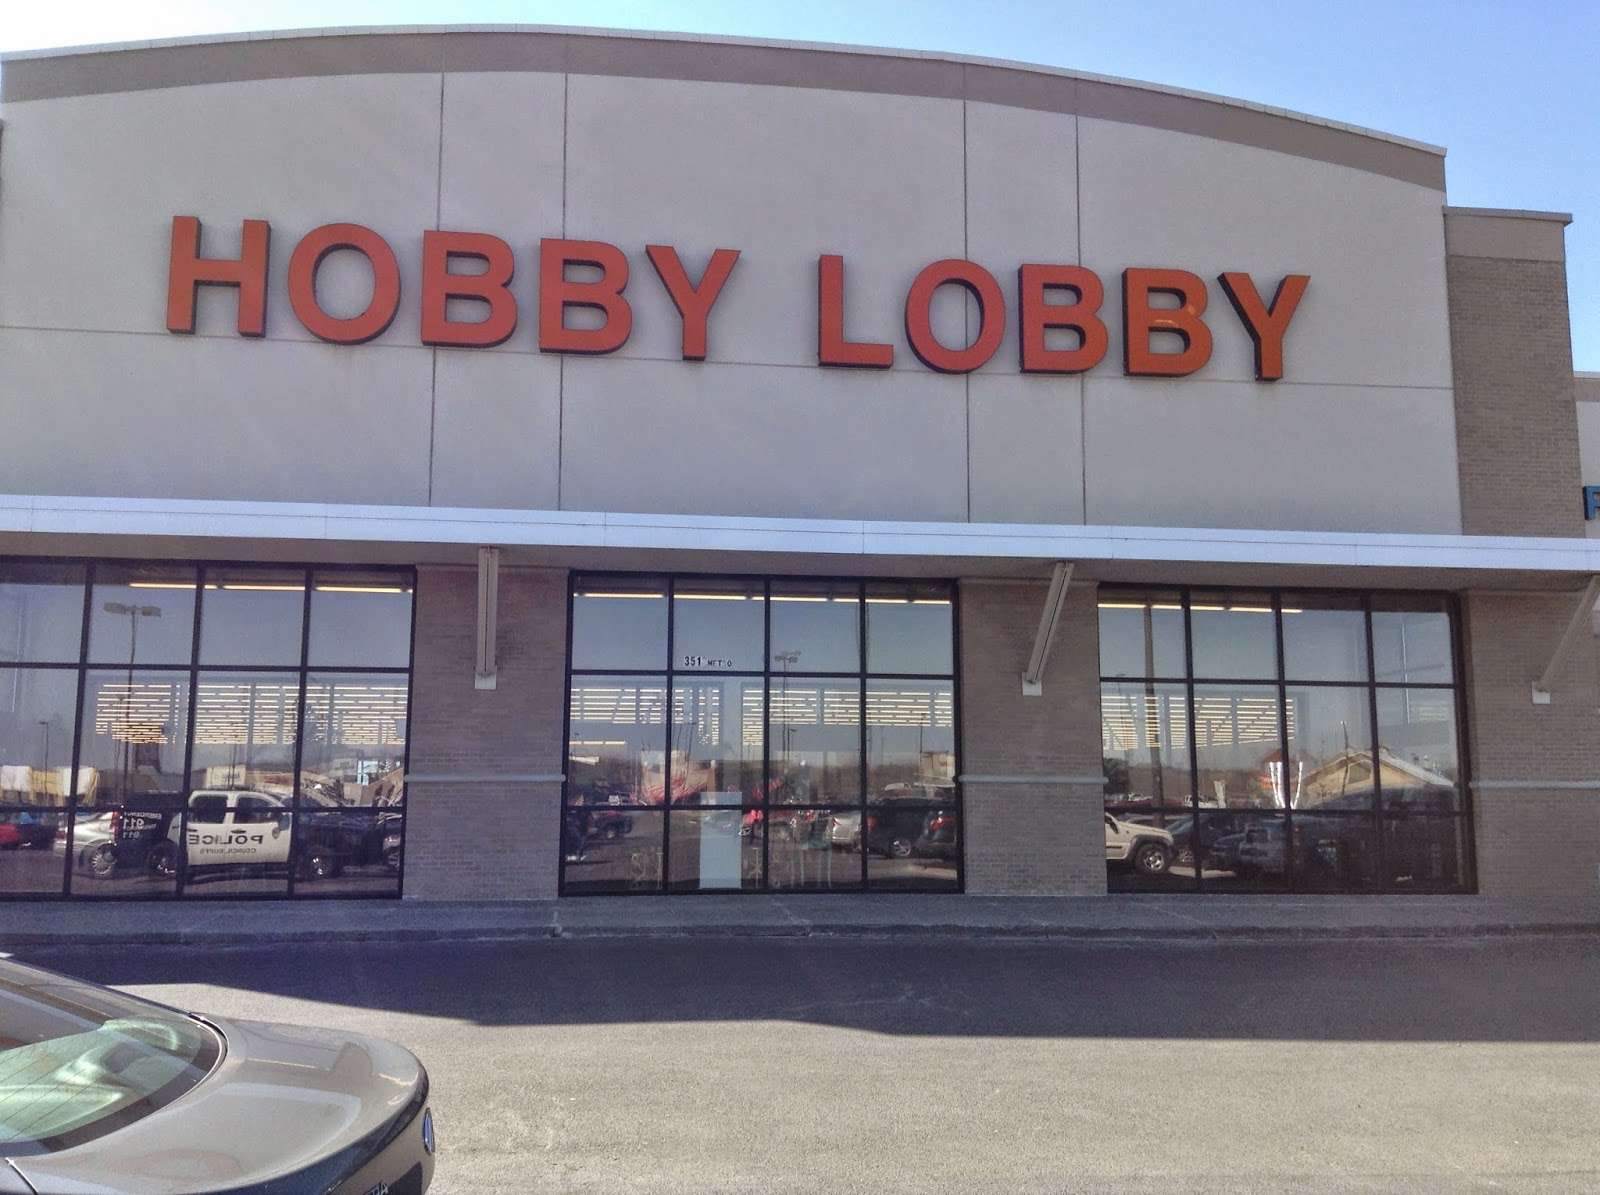 hooby lobby 45 printable coupons for hobbylobbycom | today's best offer is: 40% off any 1 regular priced item verified today.